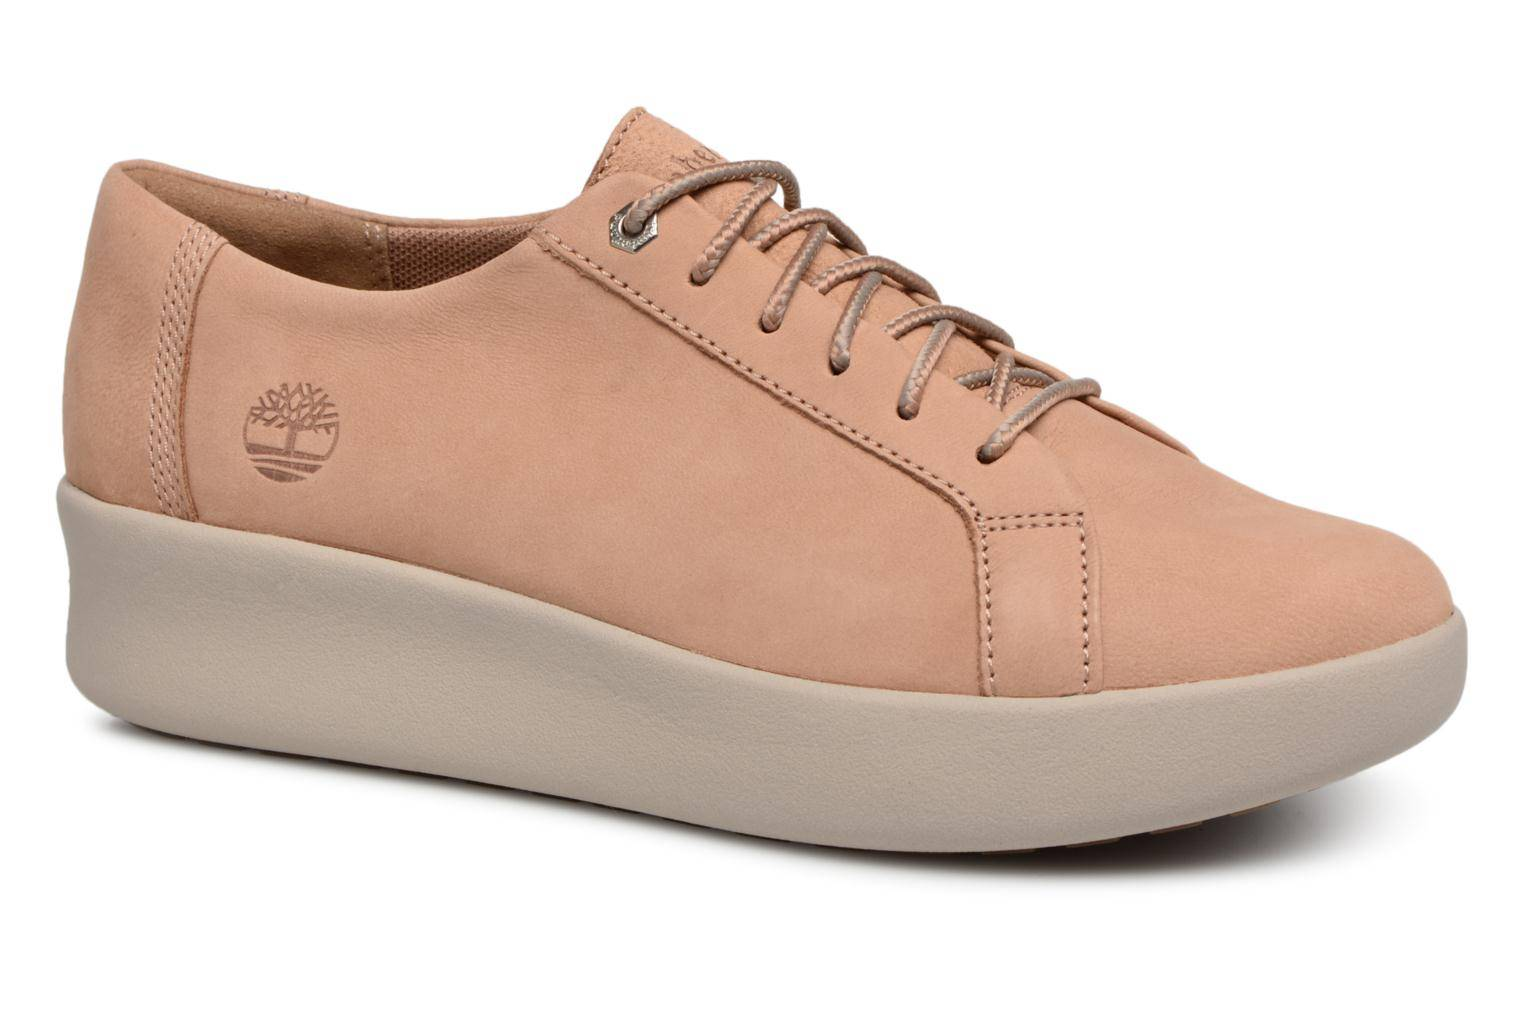 Timberland Berlin Park Oxford - Chaussures à lacets Femme, Beige